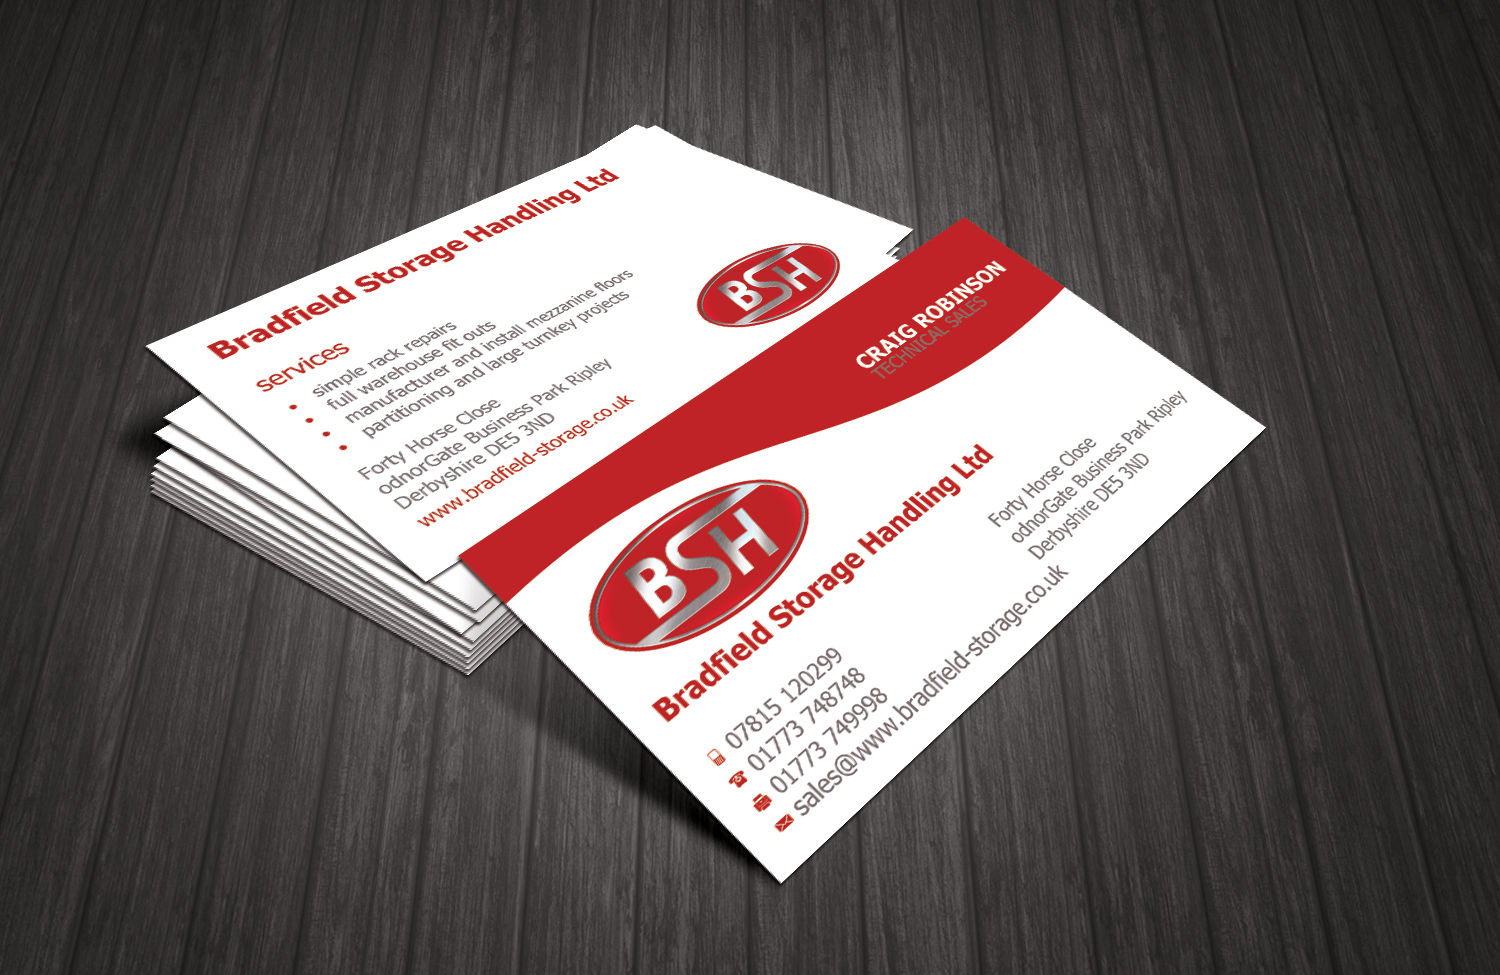 Serious professional business business card design for bradfields business card design by creative designer 2016 for bradfields design 10450742 reheart Gallery